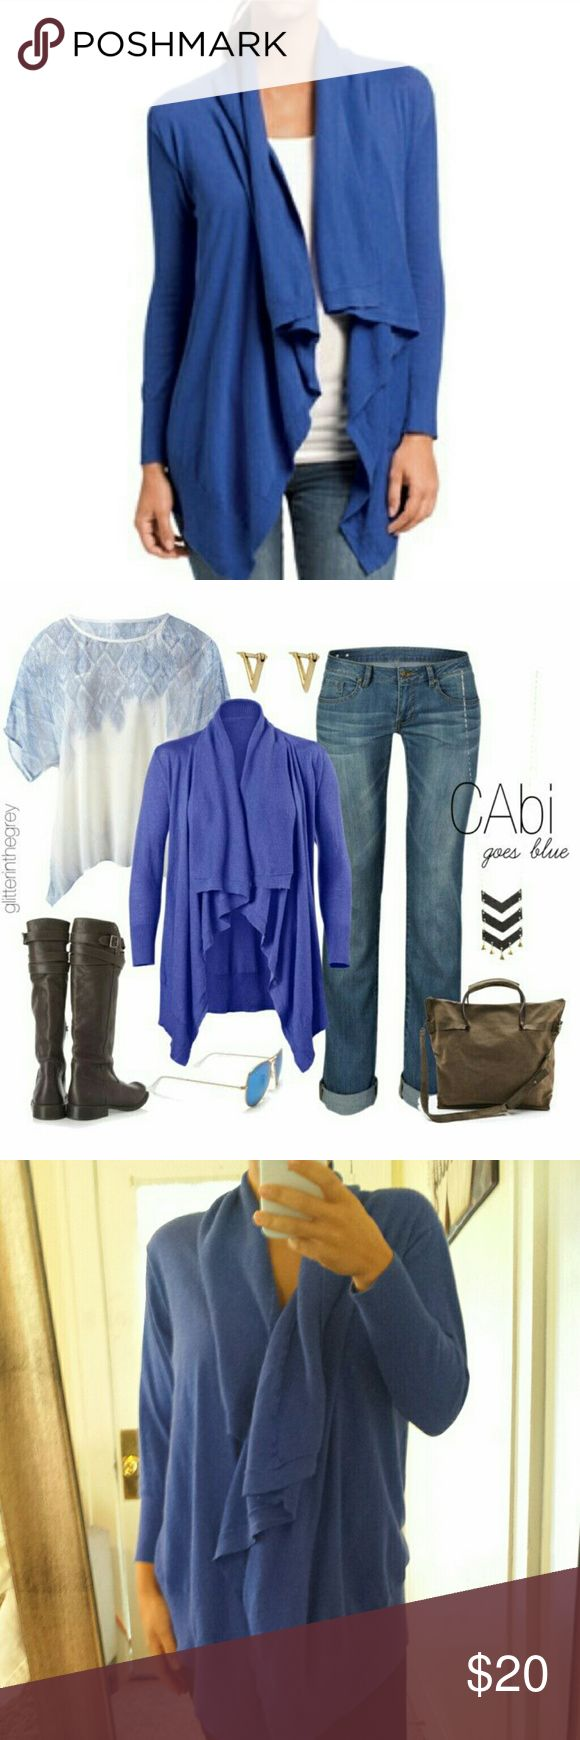 Best 25  Royal blue cardigan ideas on Pinterest | Royal blue pants ...